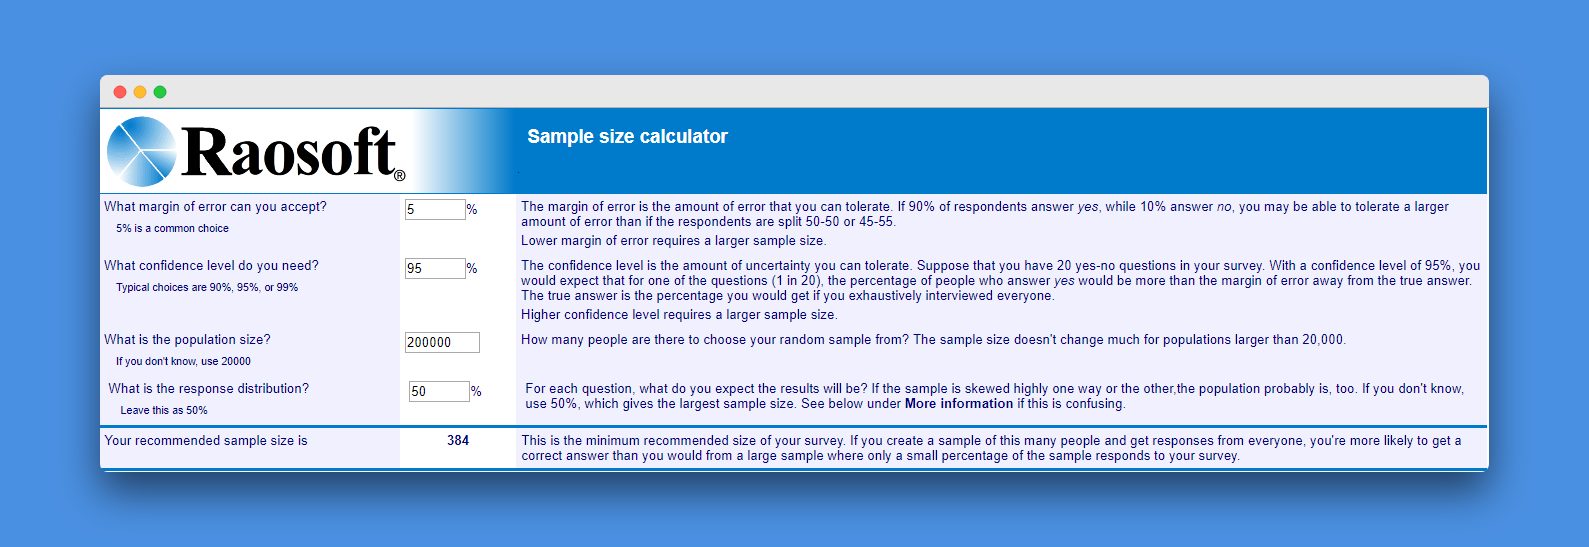 Sample size calculator by Raosoft